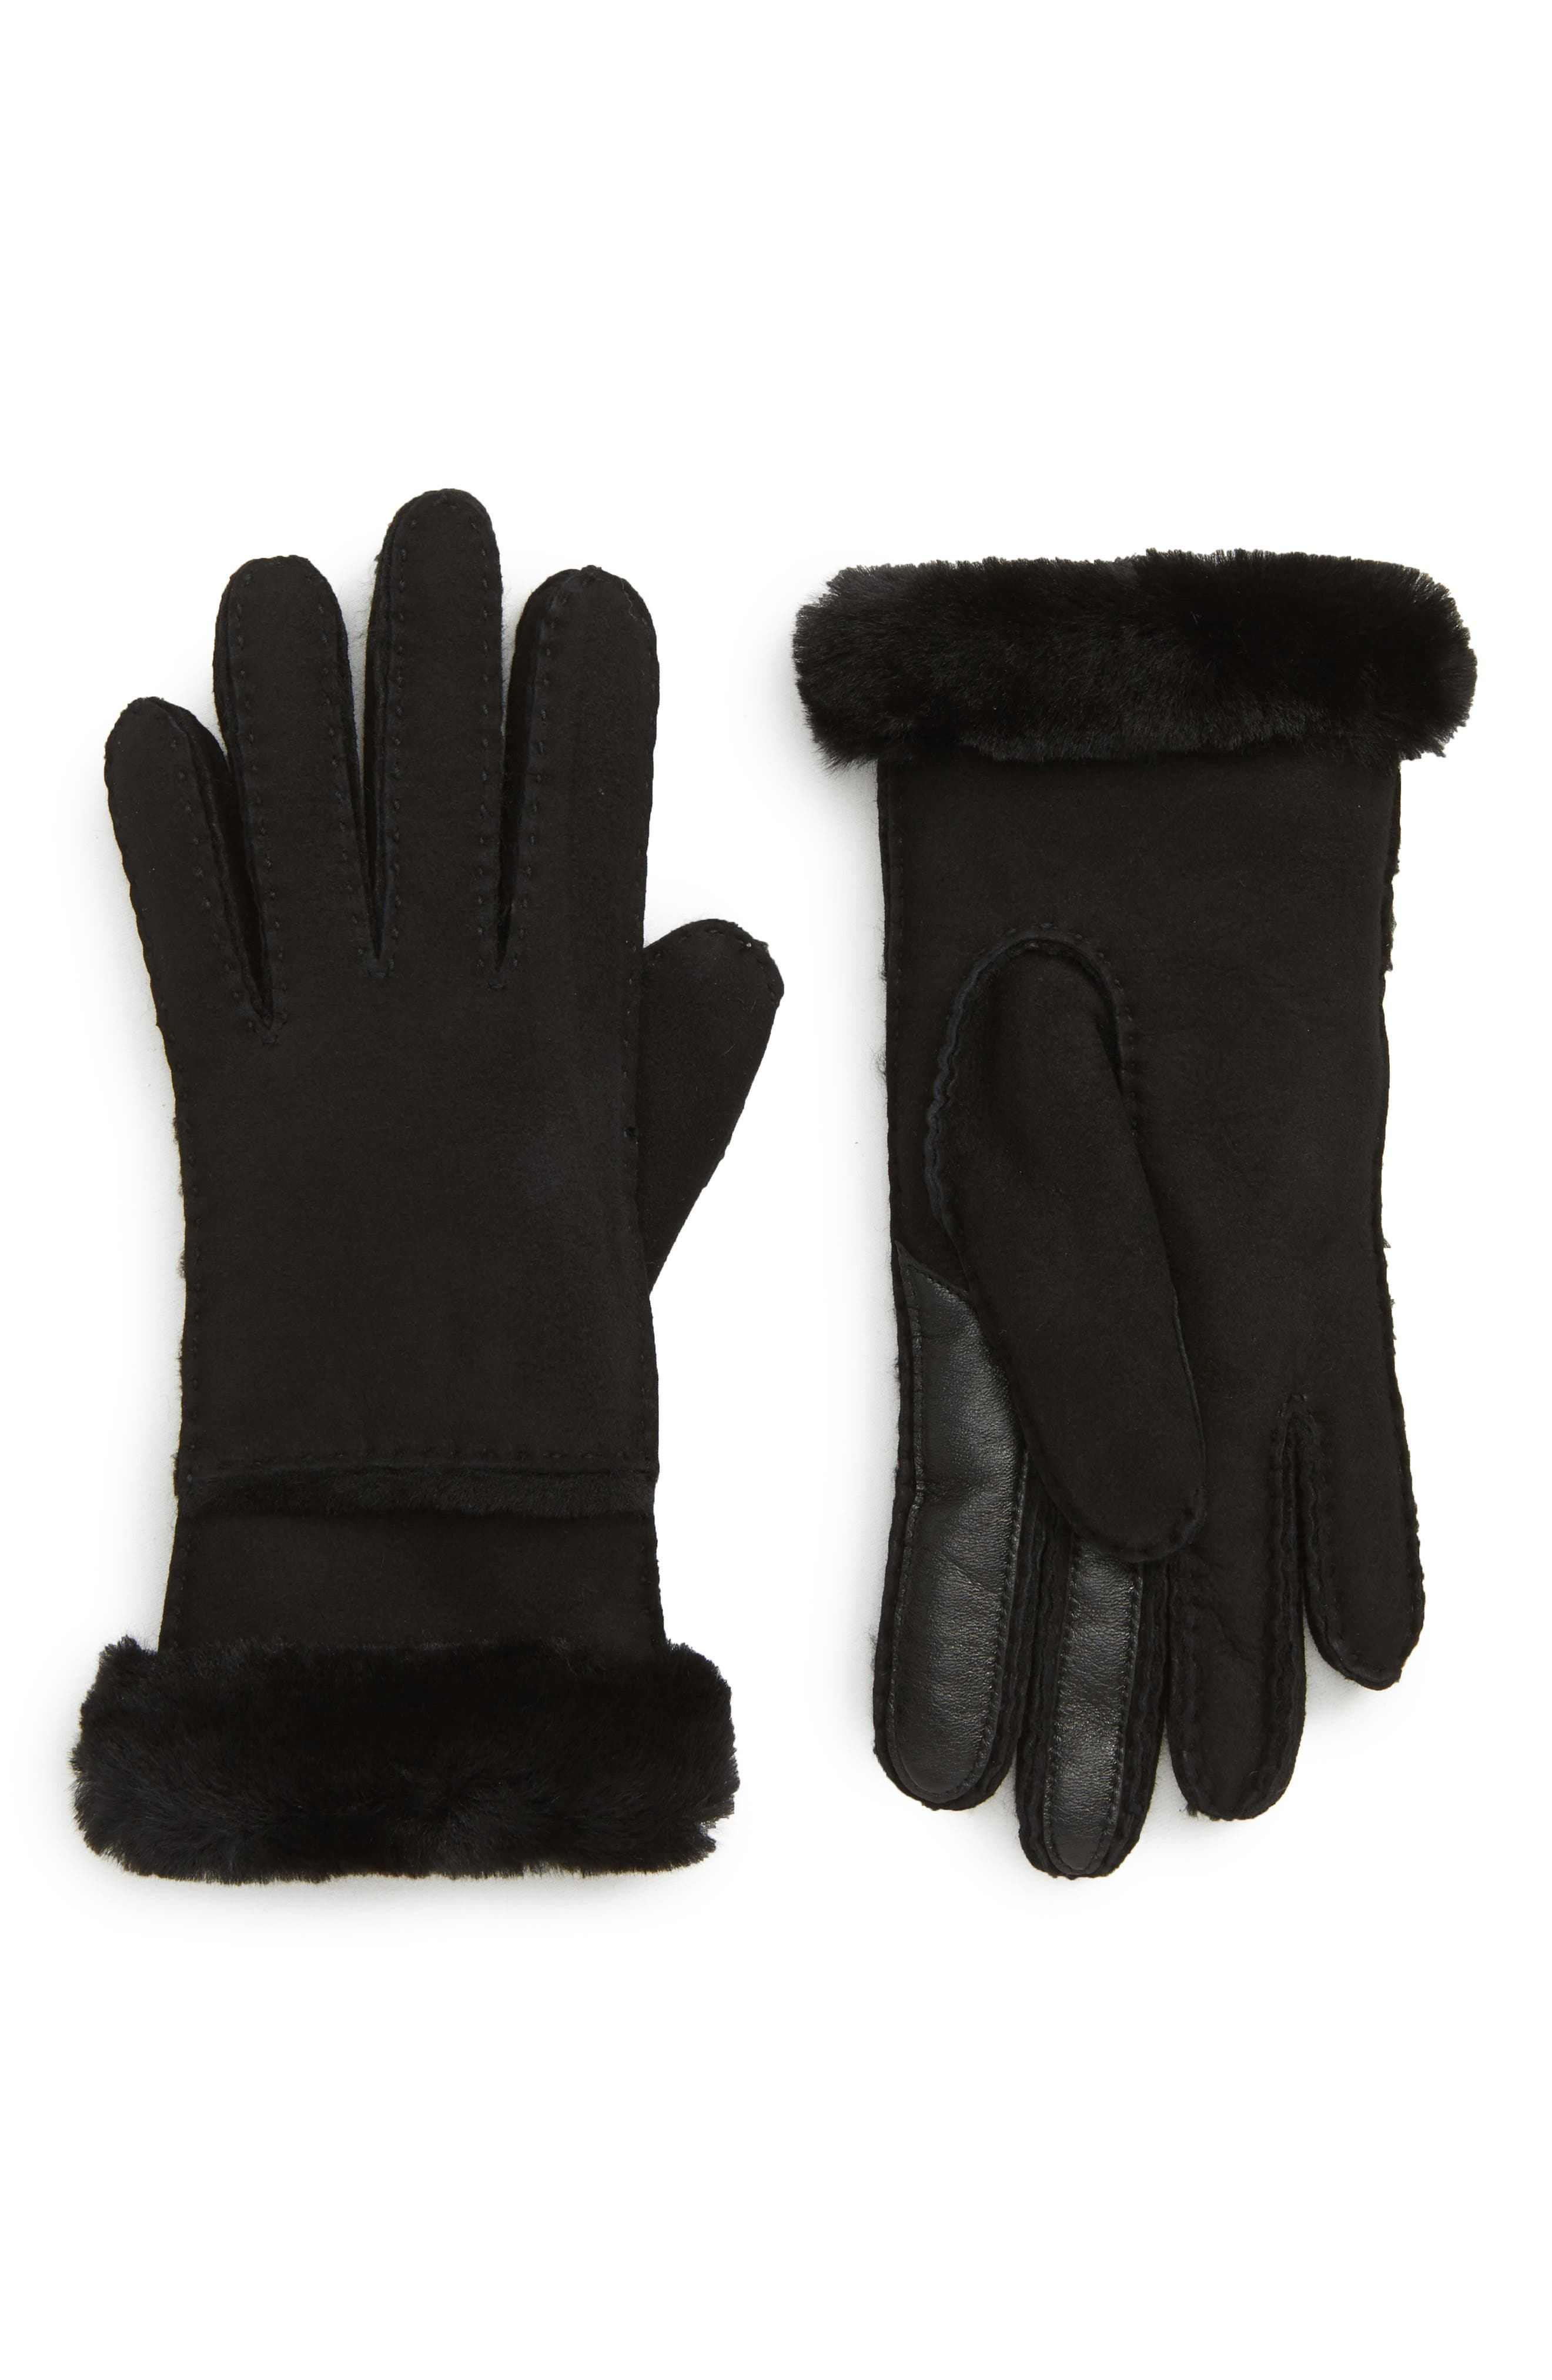 UGG<sup>®</sup> Seamed Touchscreen Compatible Gloves with Genuine Shearling Trim,                         Main,                         color, BLACK